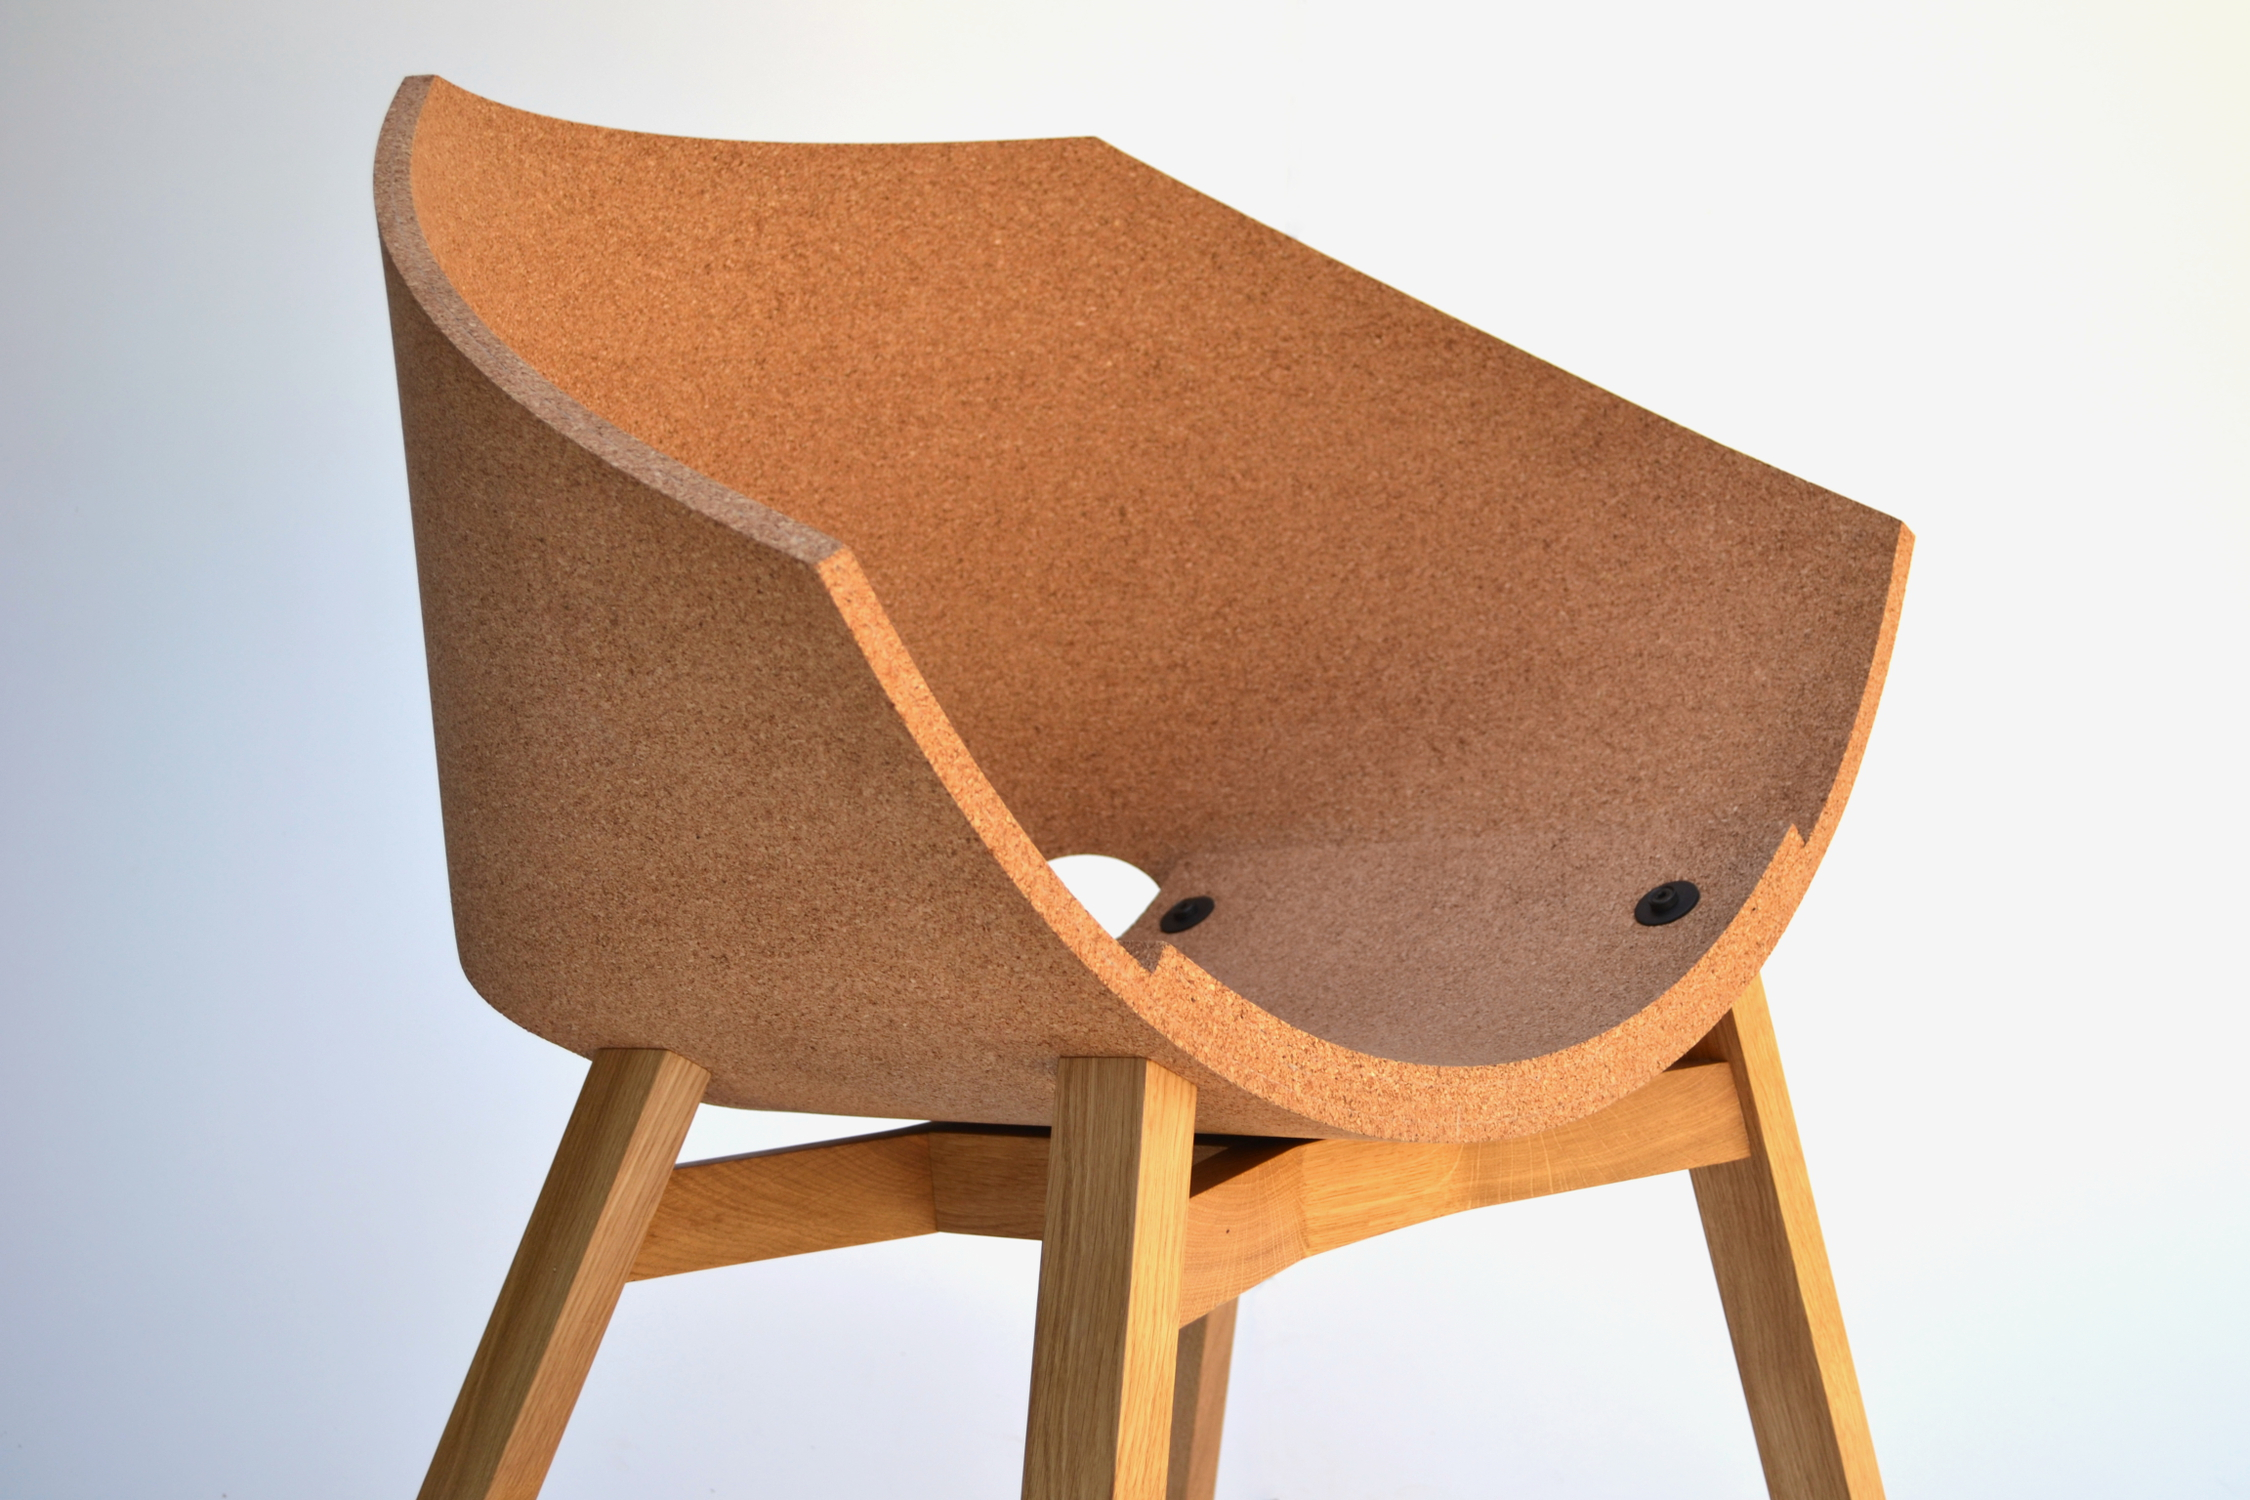 Corkigami cool seating designs made from eco friendly cork